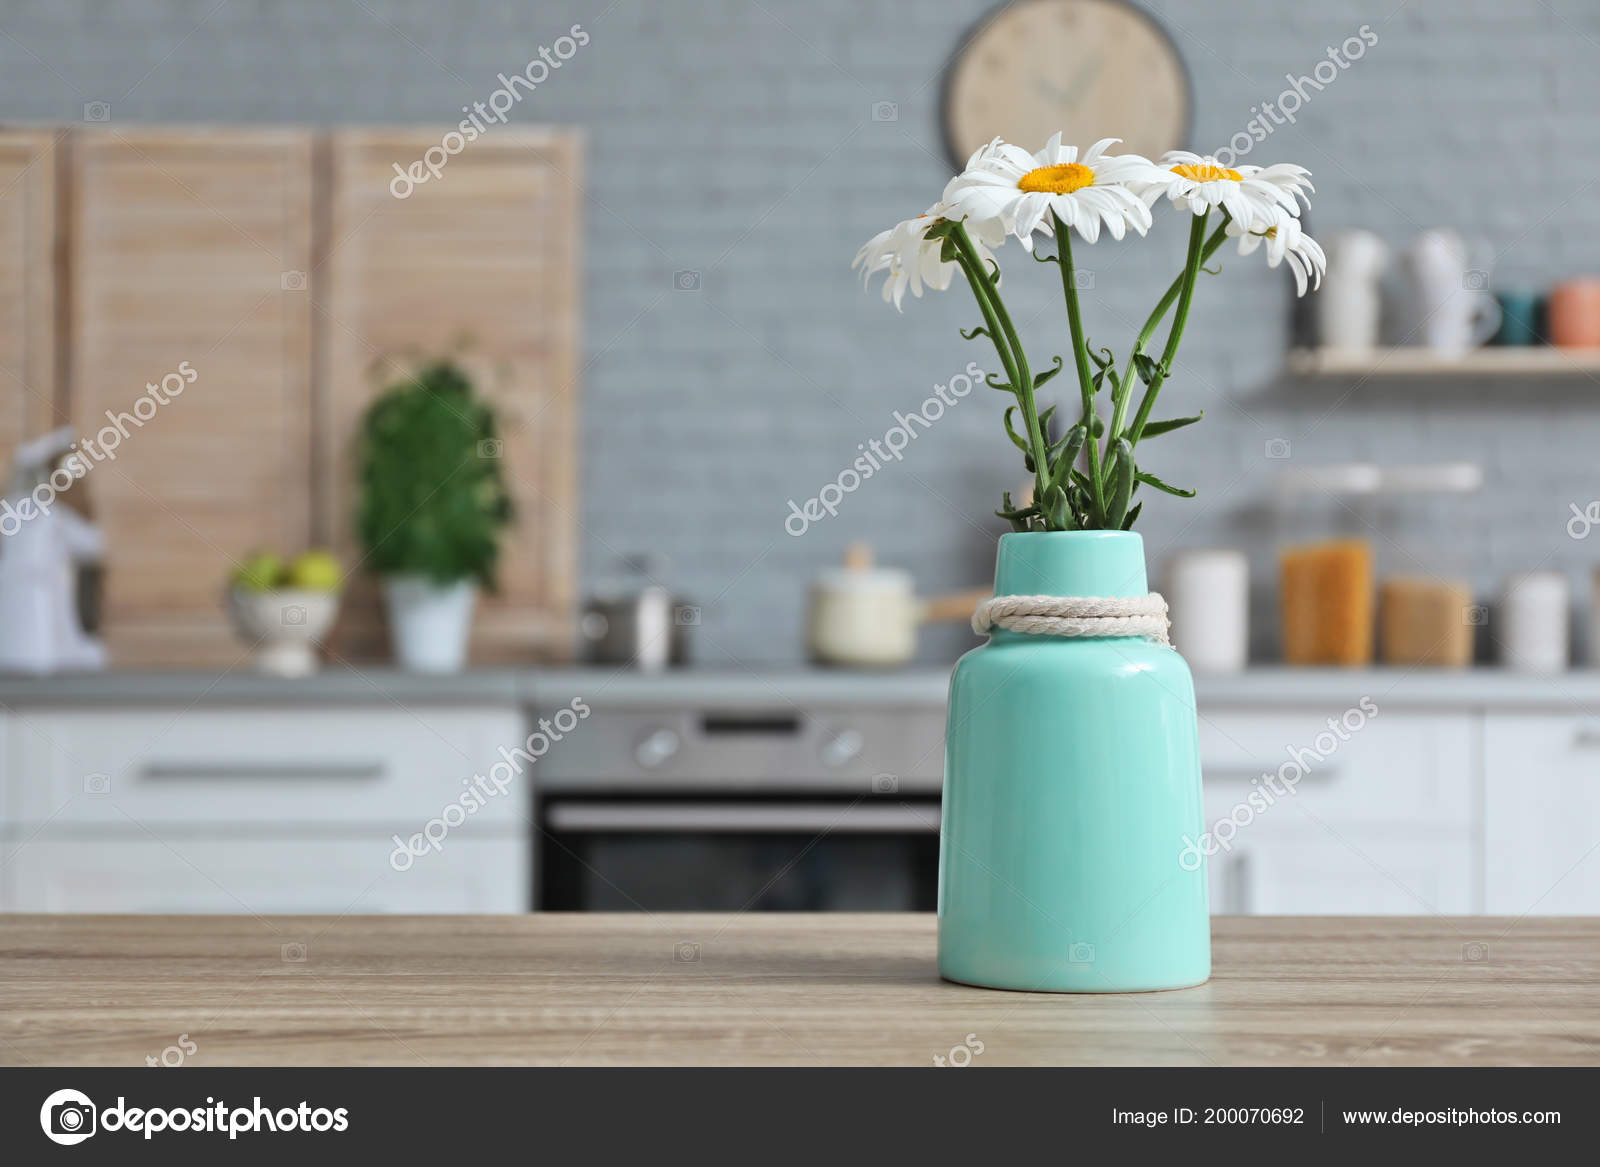 Vase Flowers Blurred View Kitchen Interior Background — Stock Photo ...